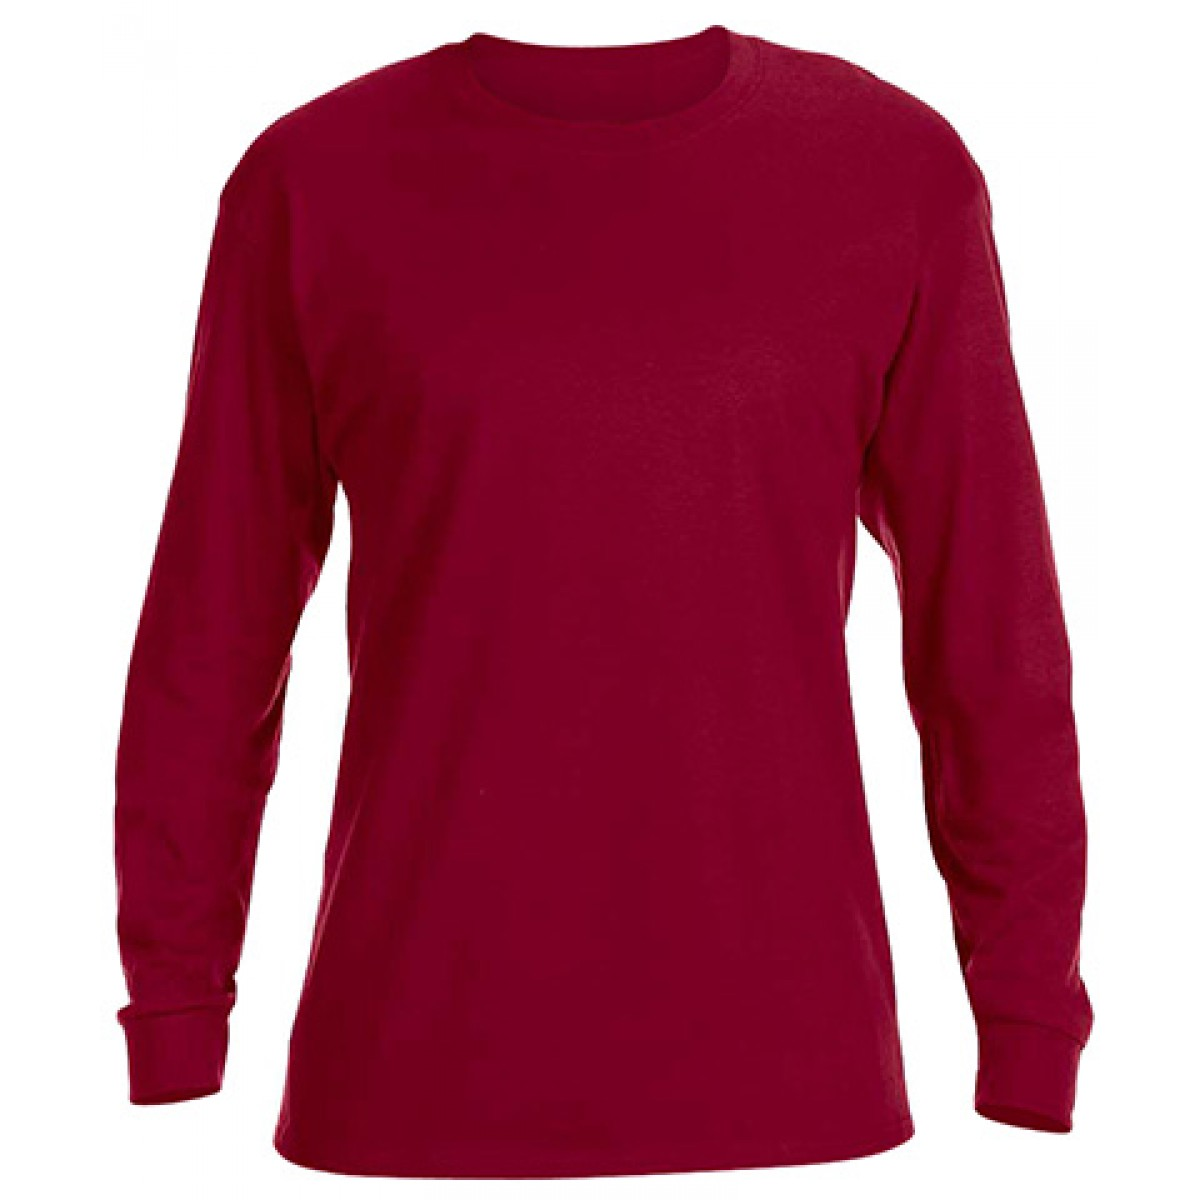 Basic Long Sleeve Crew Neck -Cardinal Red-YS